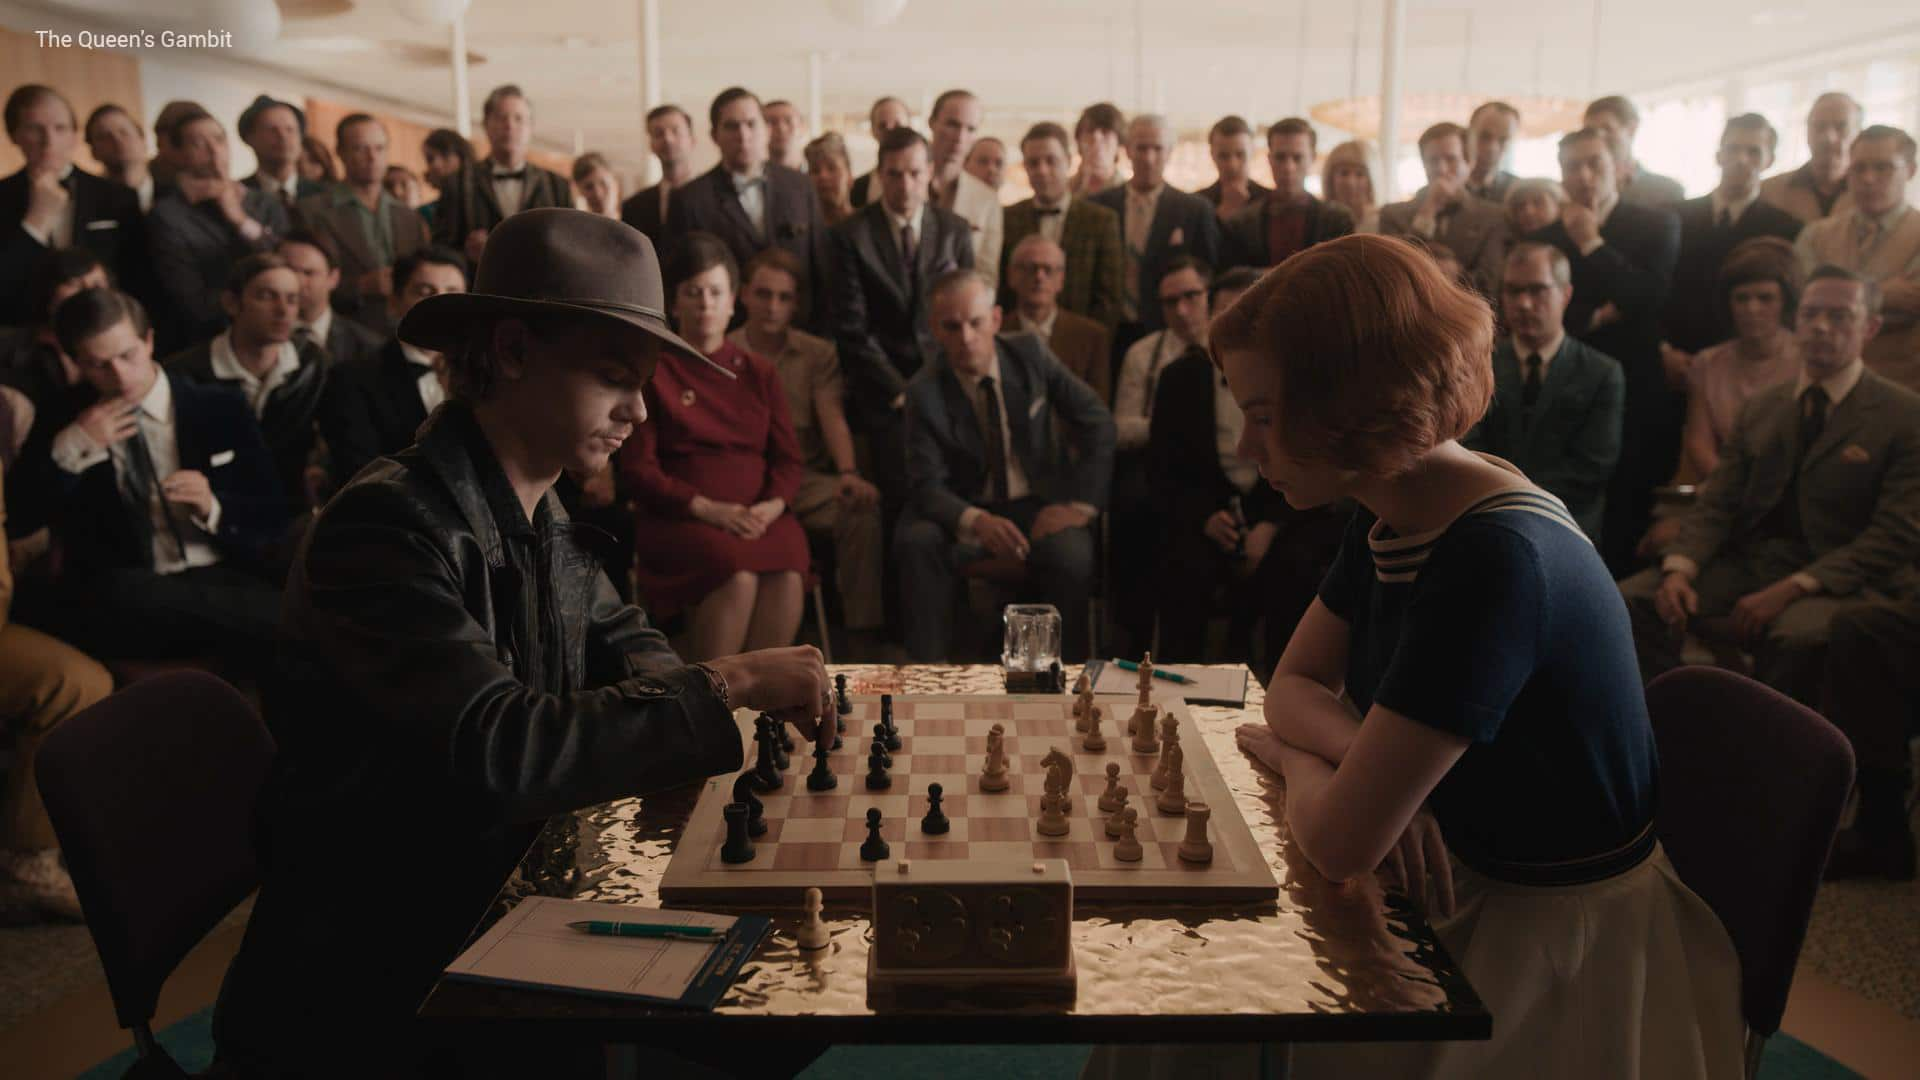 The Crown, Bridgerton, and other Netflix series get recreated in LEGO 23